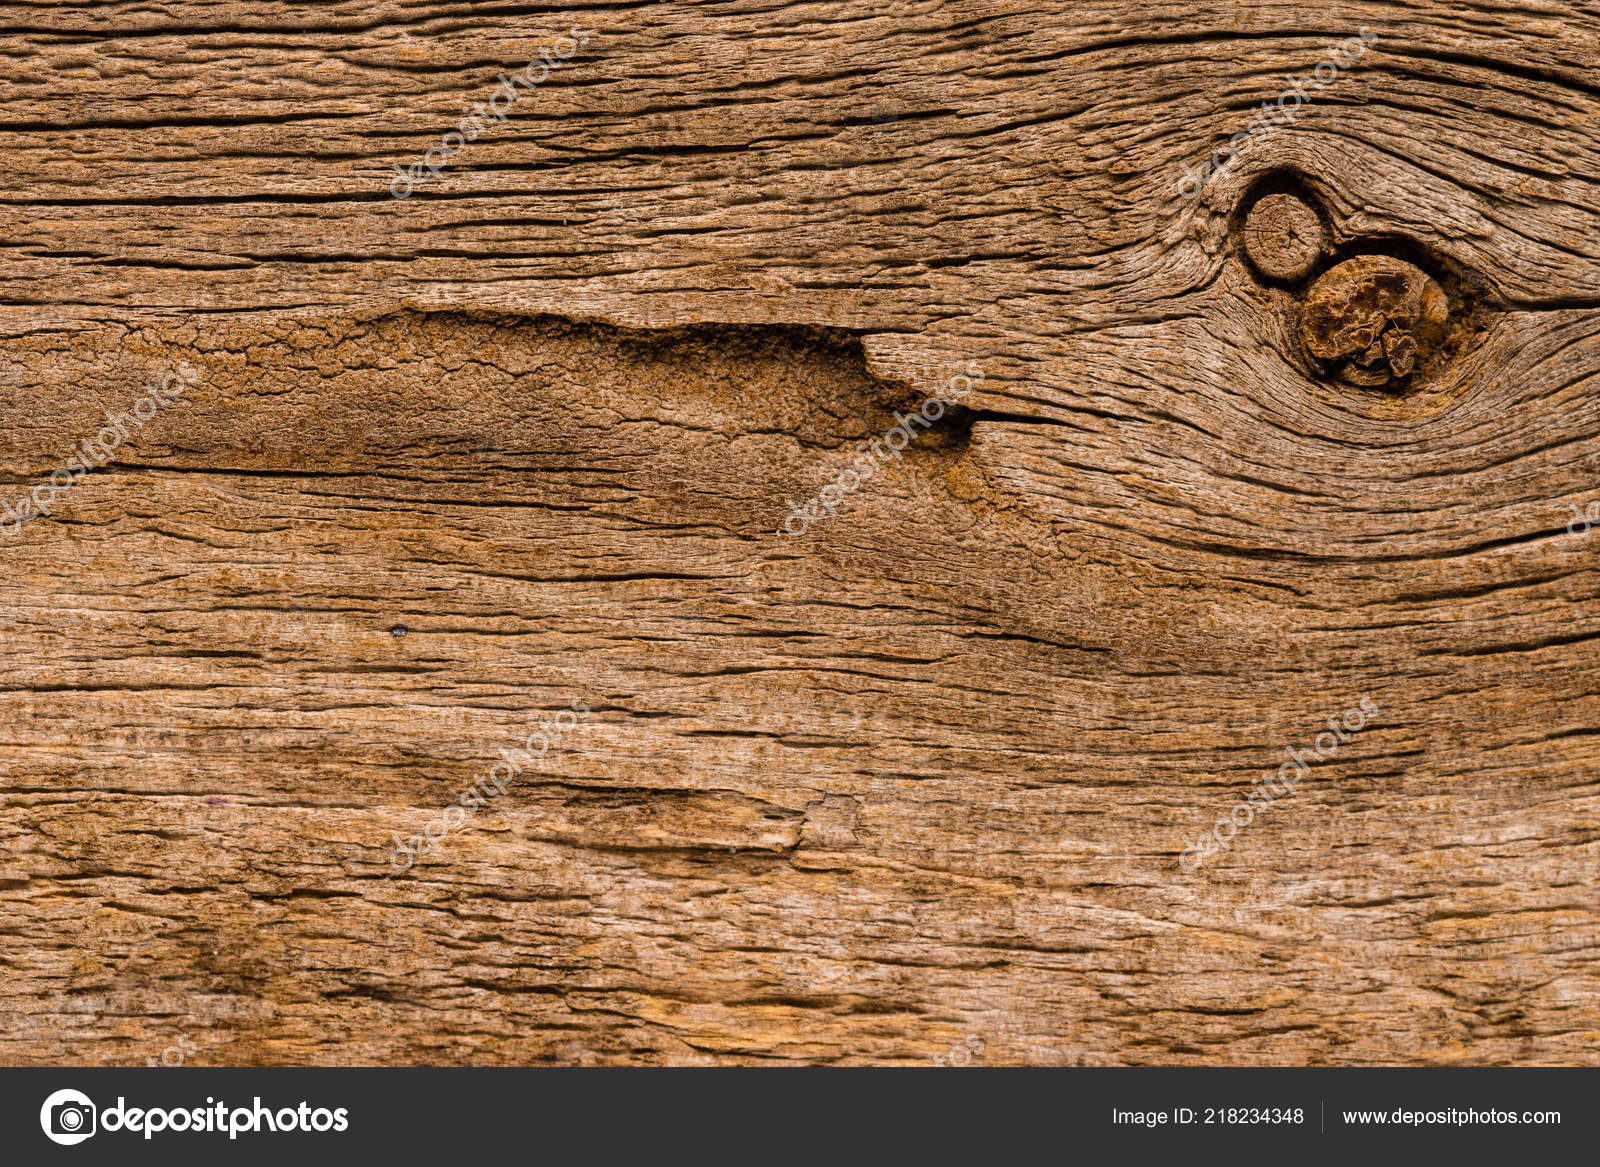 Wood Texture Brushed Pine Boards Knots Abstract Background